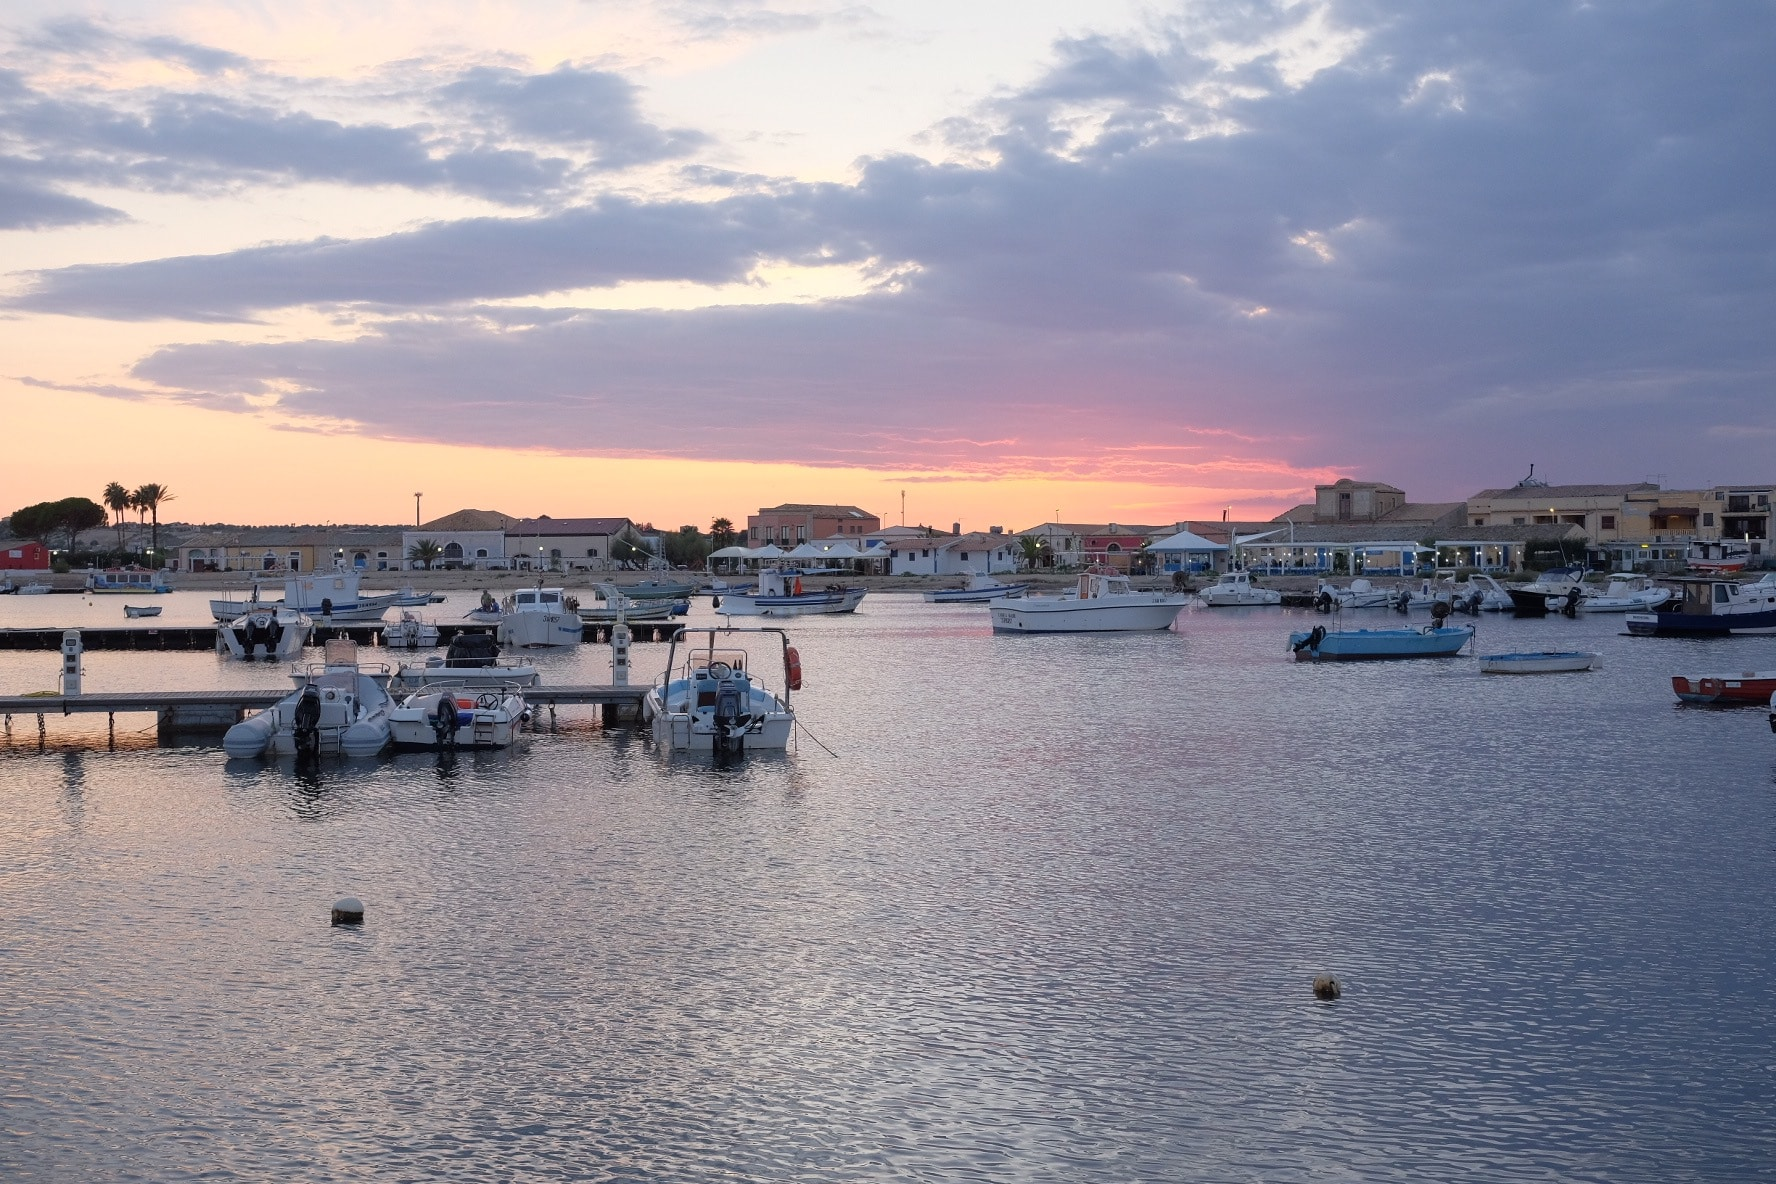 sunset at the harbour in Marzamemi